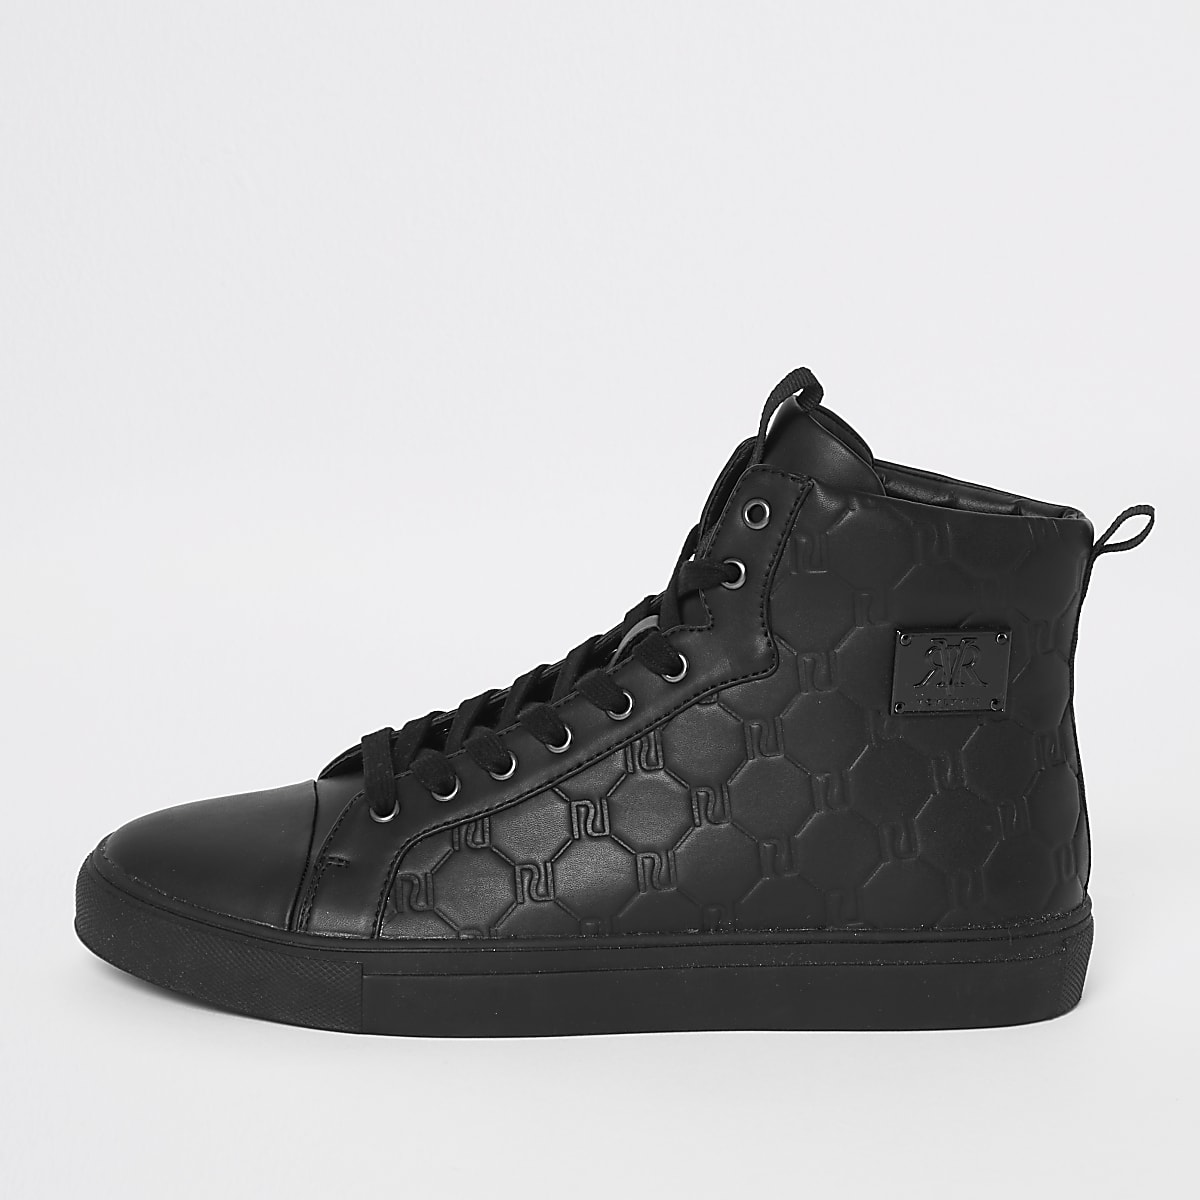 Black RI monogram high top trainers